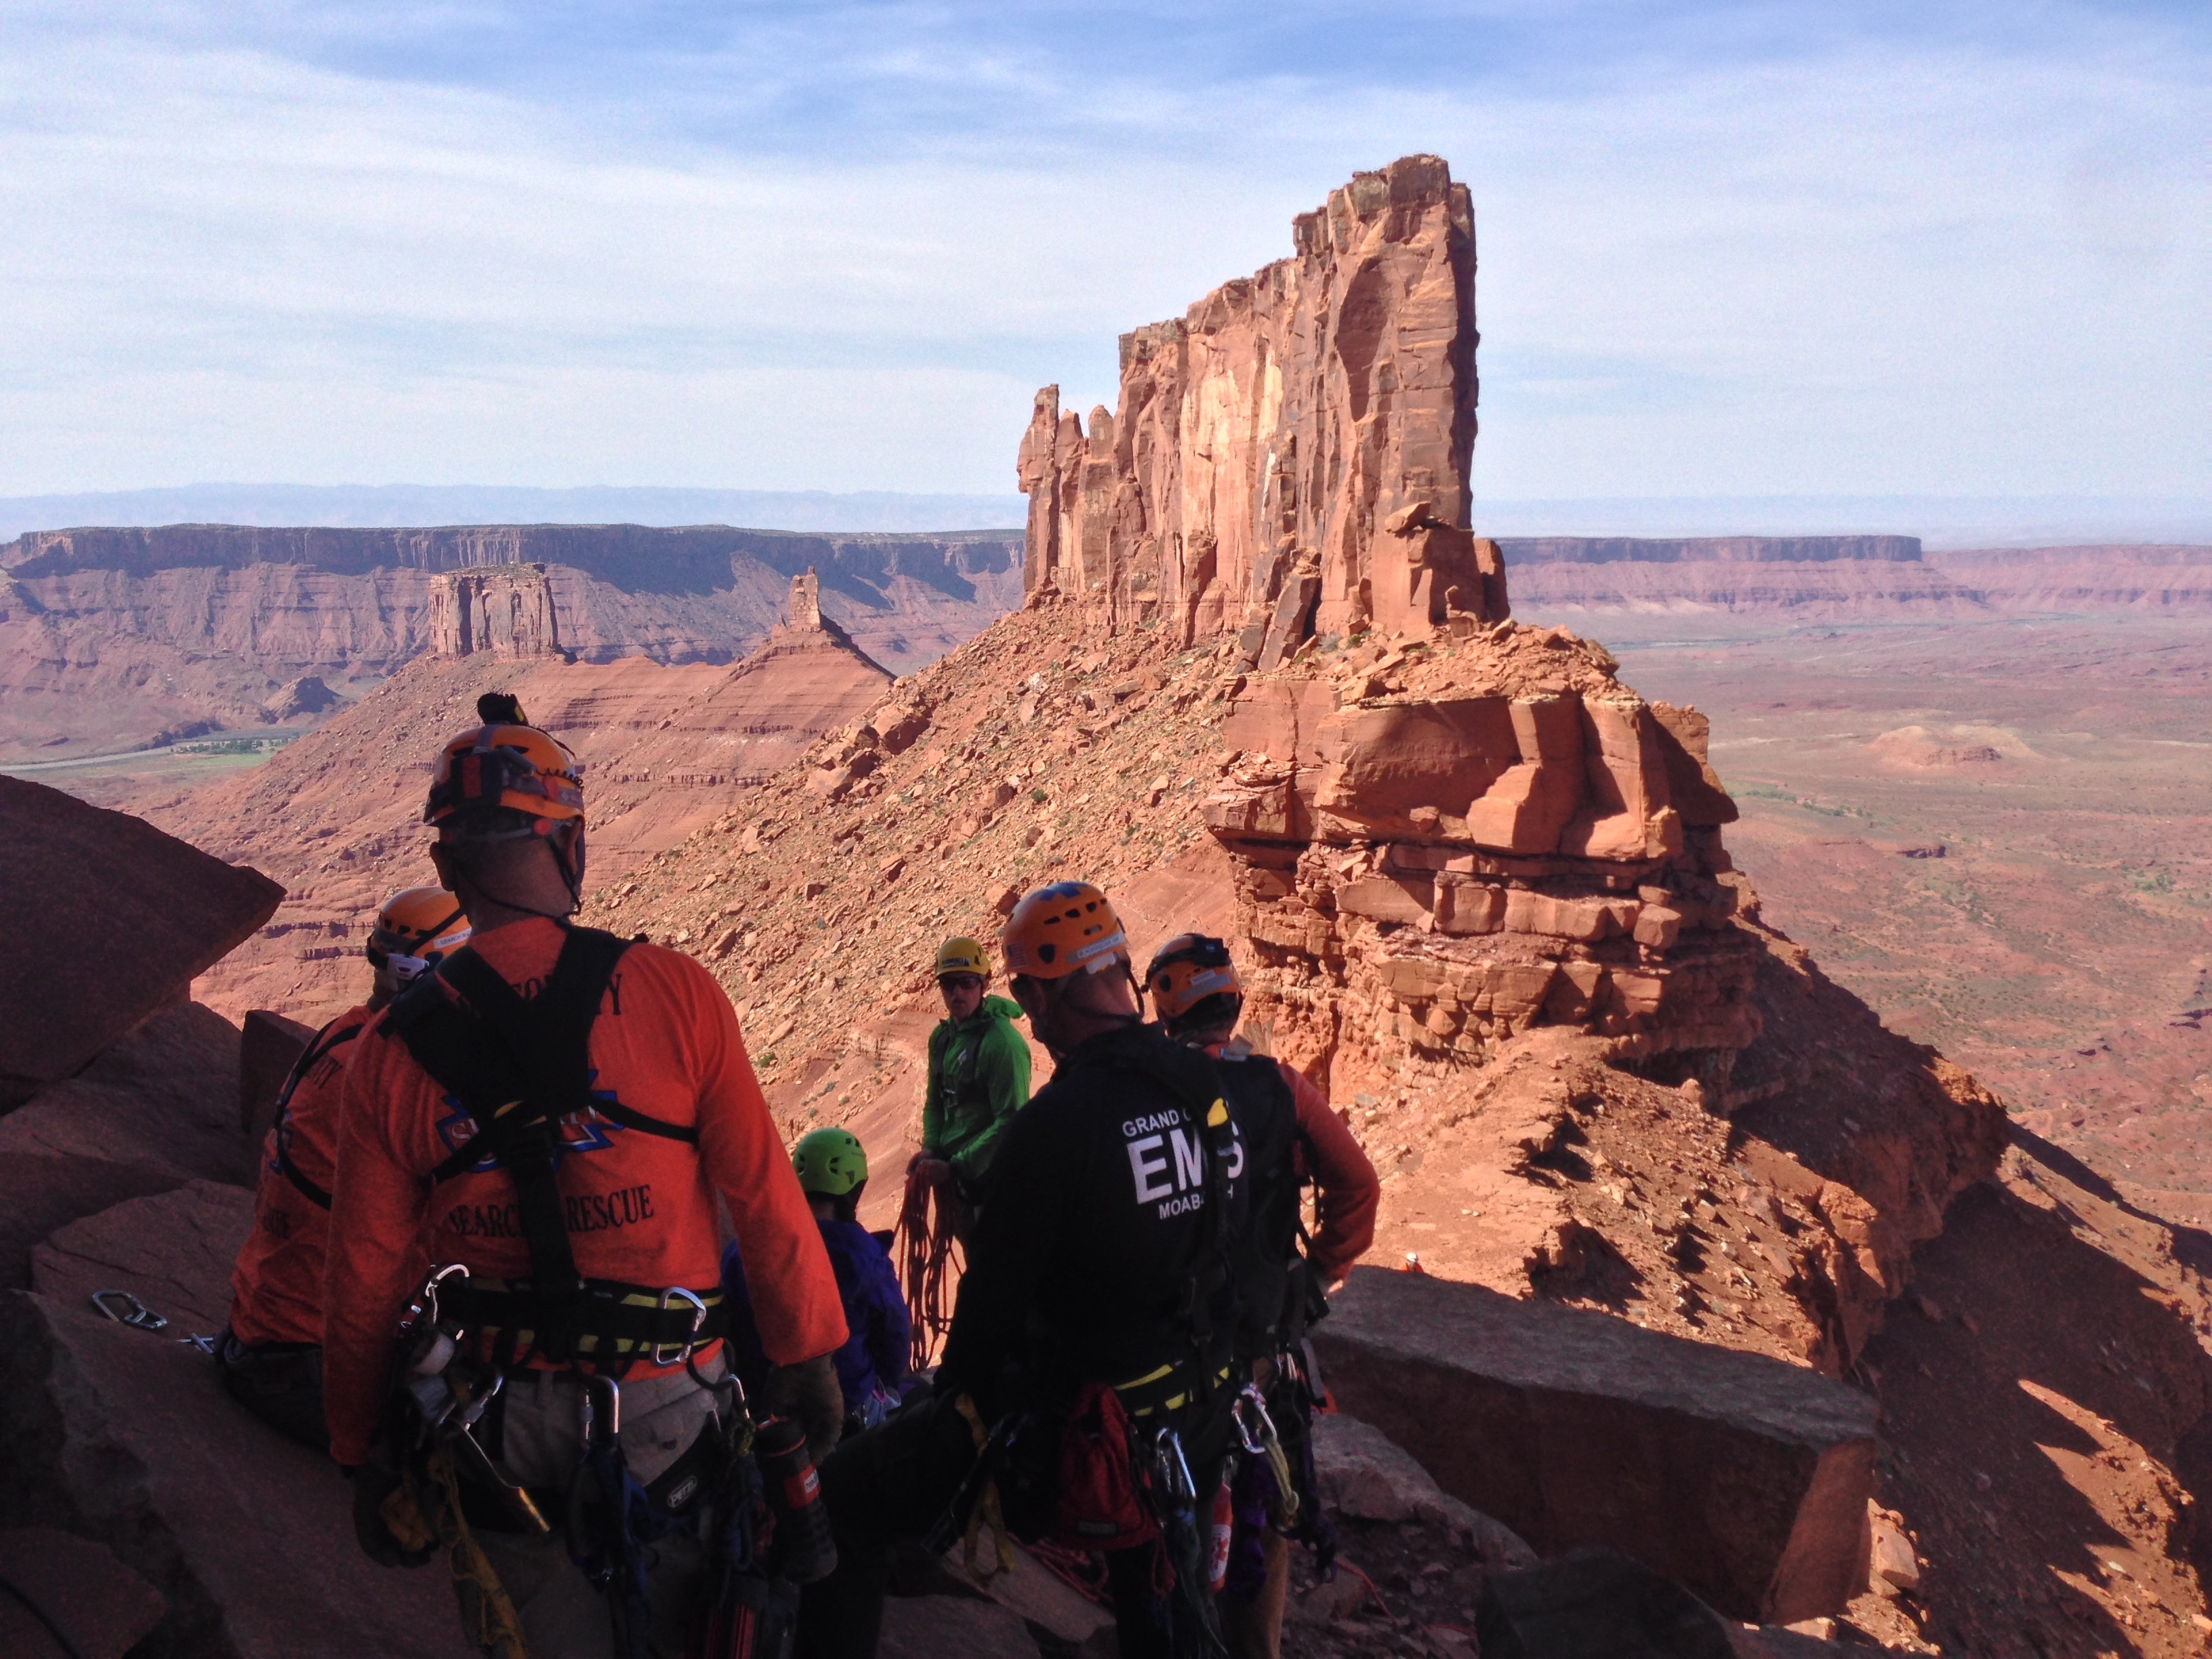 Rescue team assembled on the wall with iconic redrock spires in the background